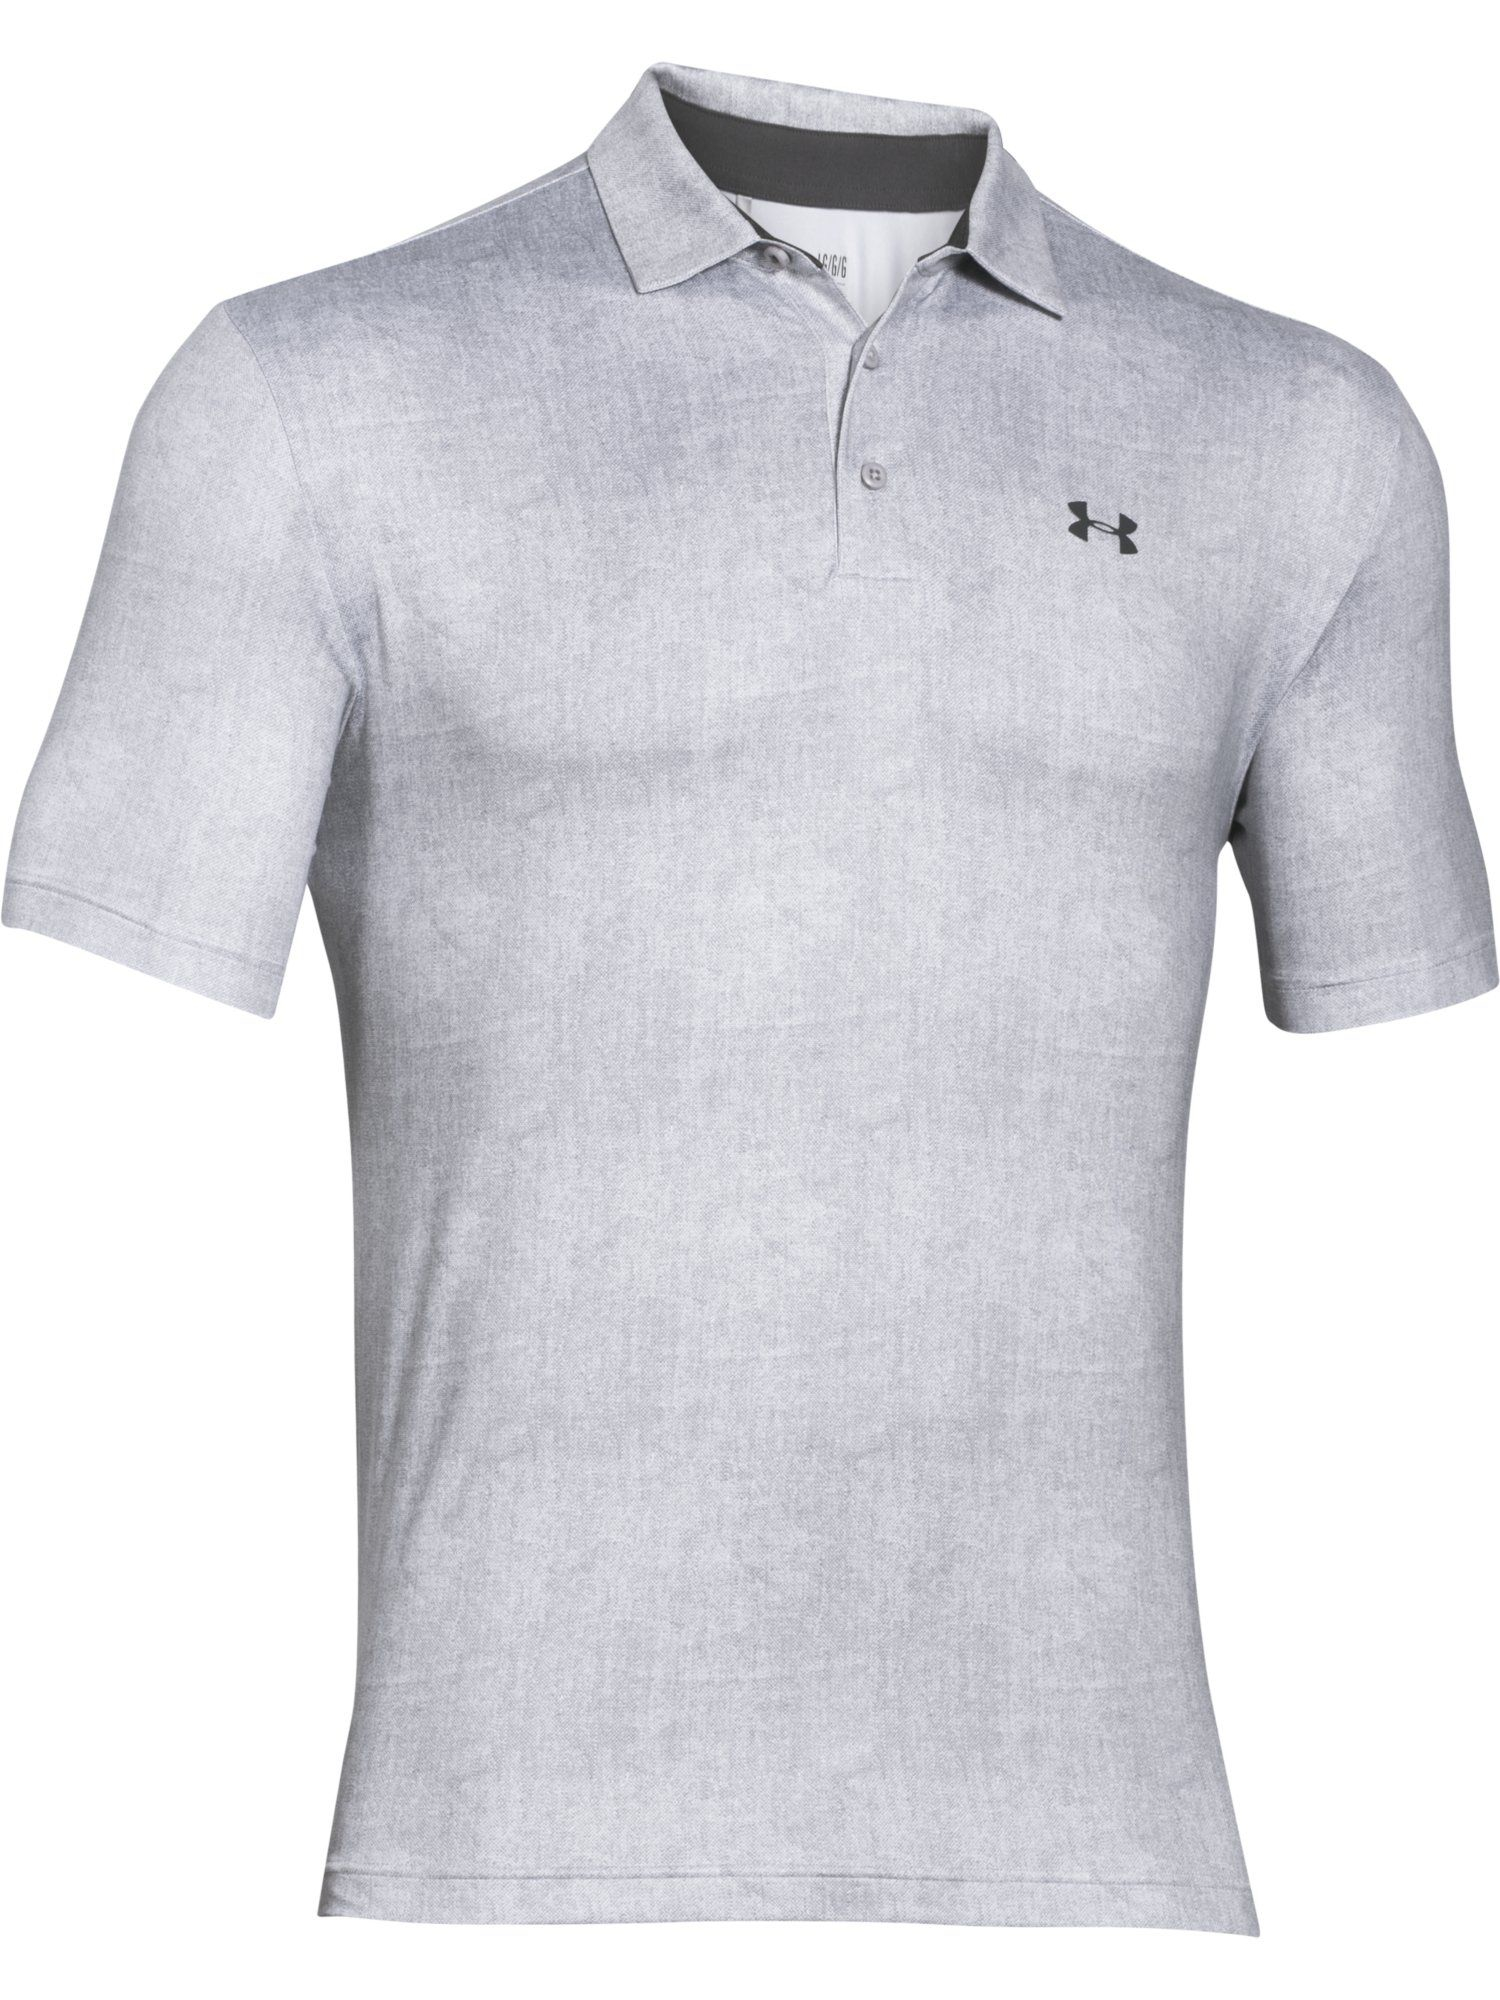 Under armour playoff polo in gray for men lyst for Gray under armour shirt